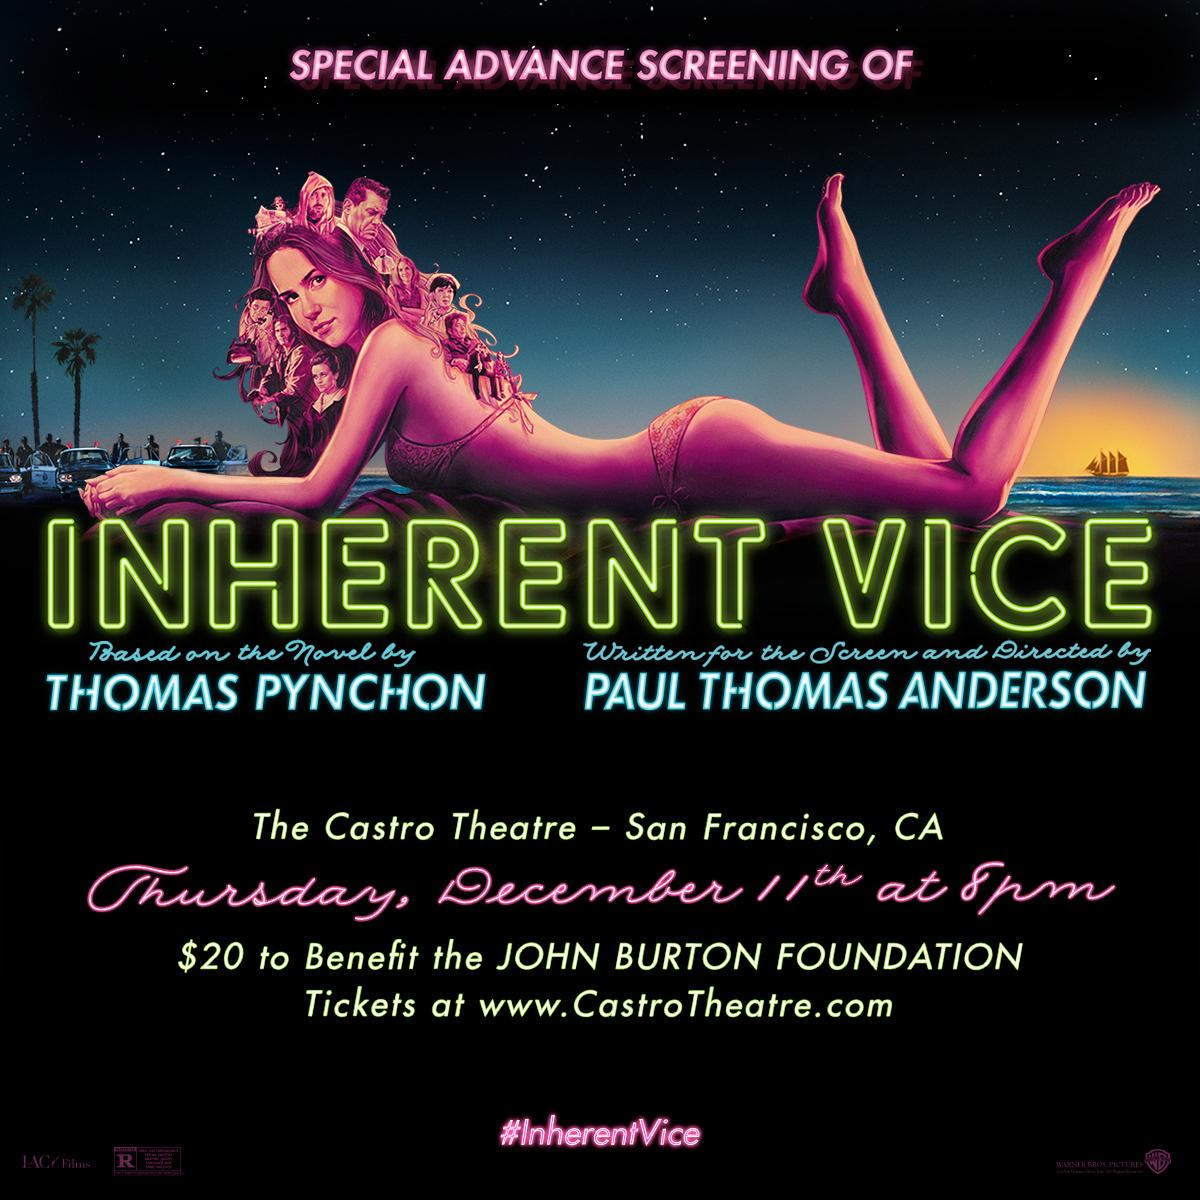 Special Advance Screening of INHERENT VICE. Thursday December 11. Purchase tickets now >> http://t.co/K3hWayA3kU http://t.co/4AVjPk0h3Q